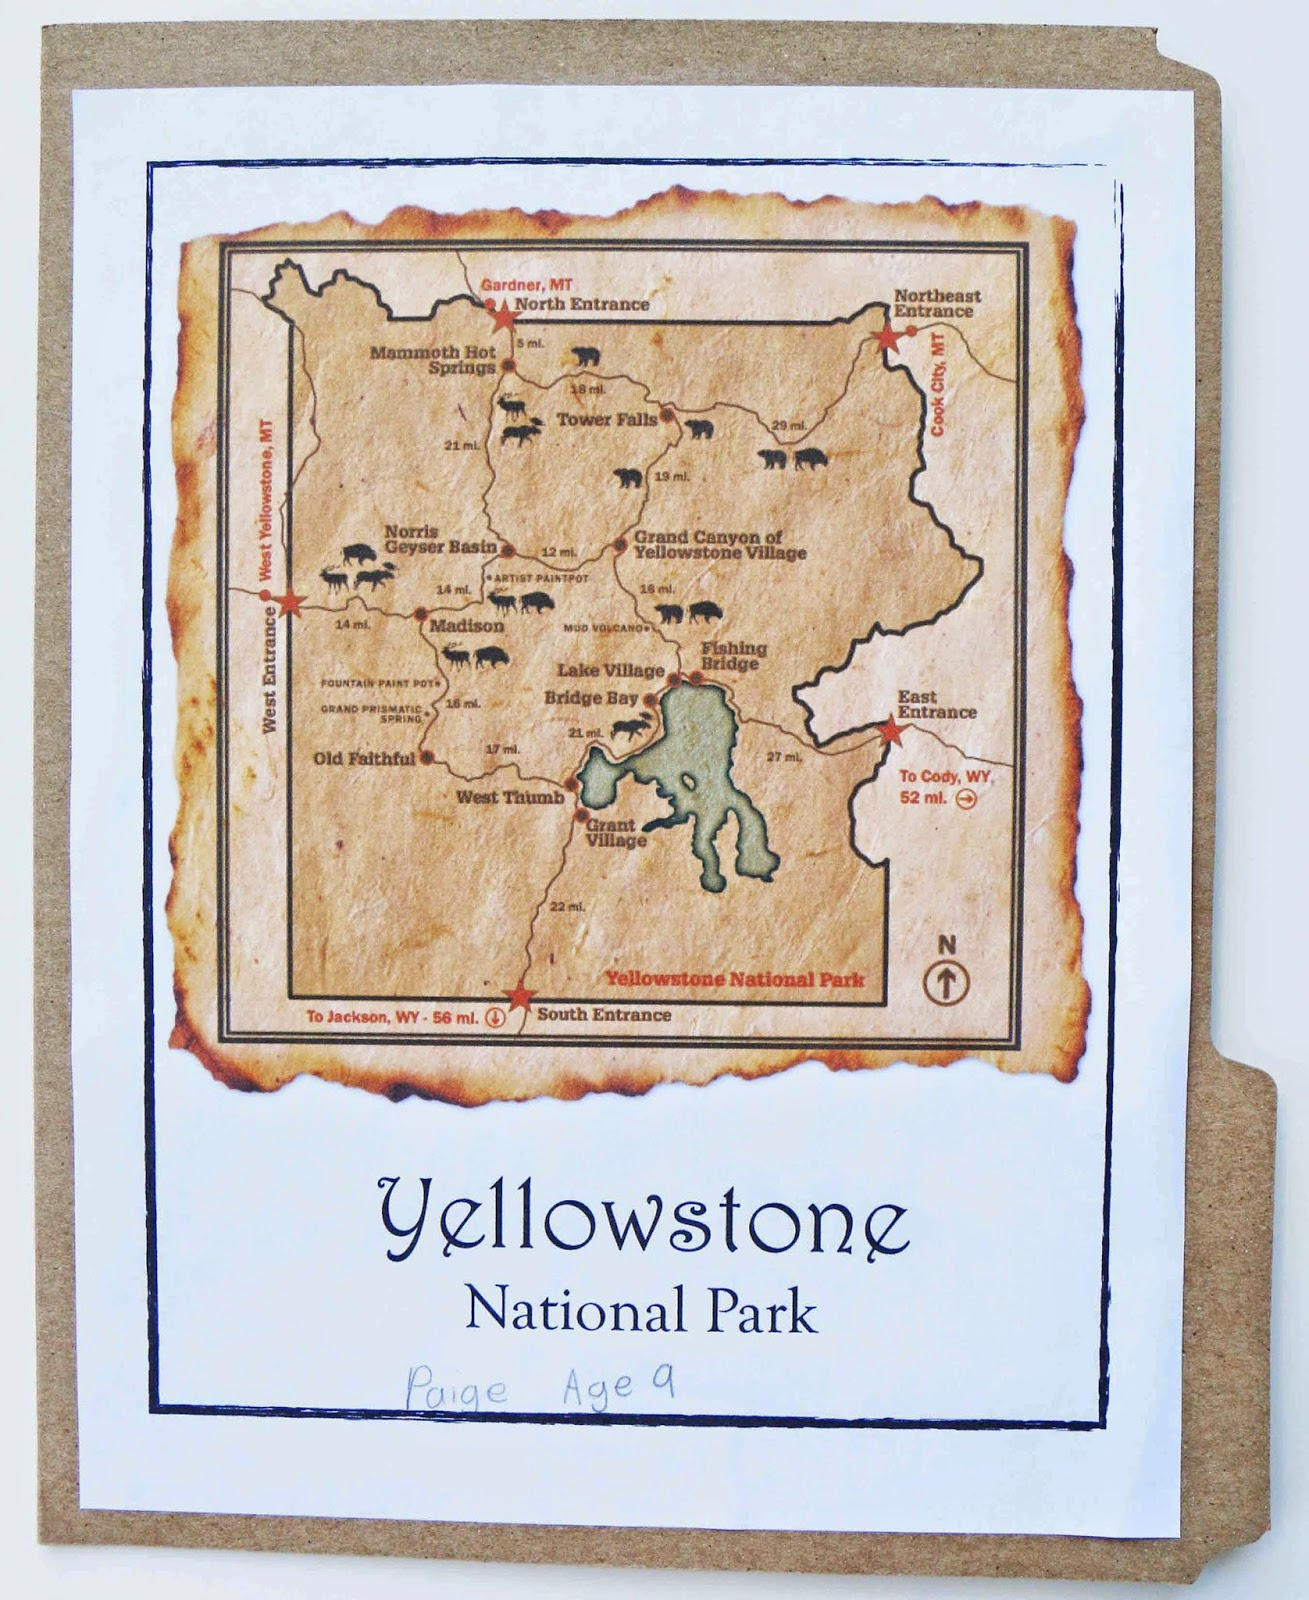 Free Yellowstone National Park Lapbook